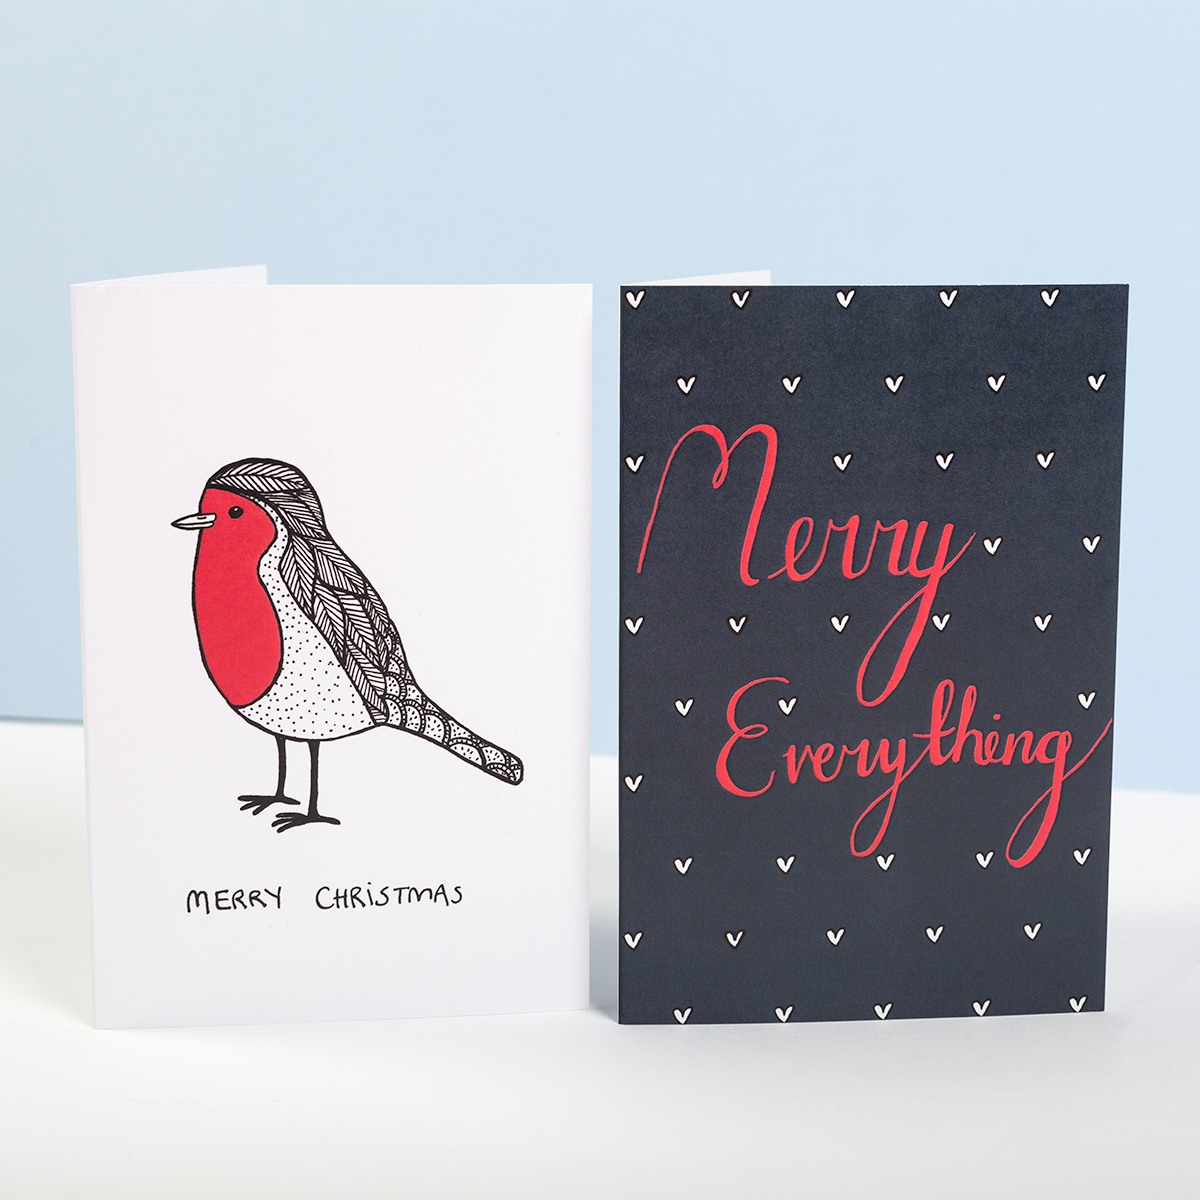 Christmas cards, greetings cards, merch, custom greetings cards, Awesome Merch